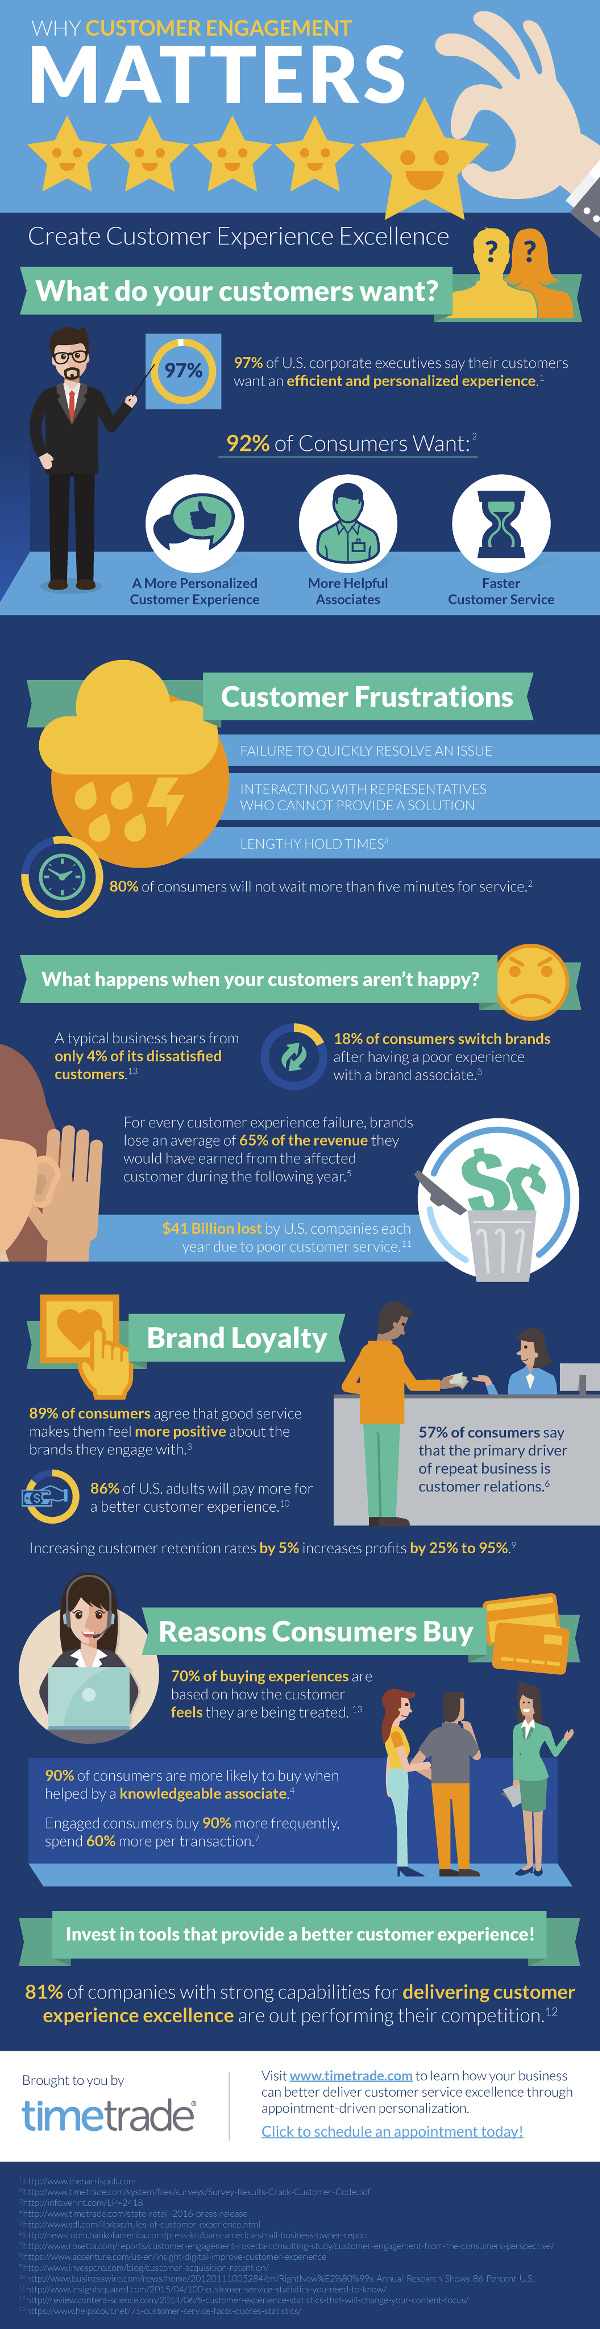 170106 infographic customer engagement